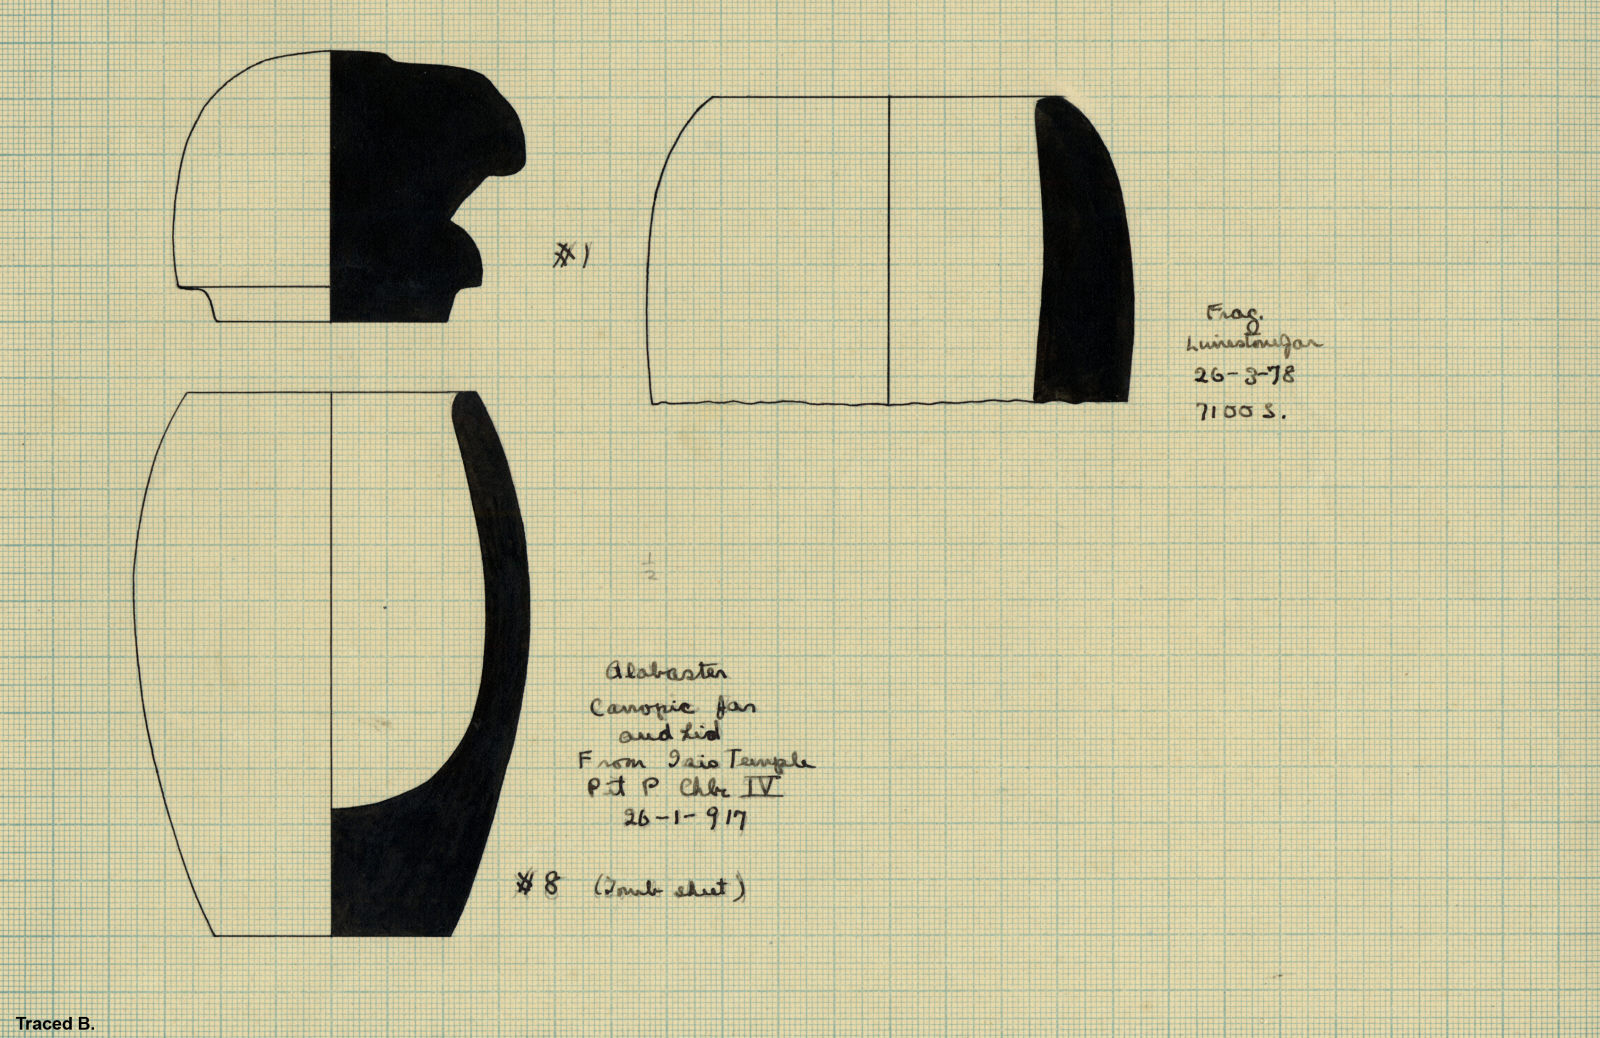 Drawings: Objects from Isis Temple, Shaft P; and Street G 7100 S